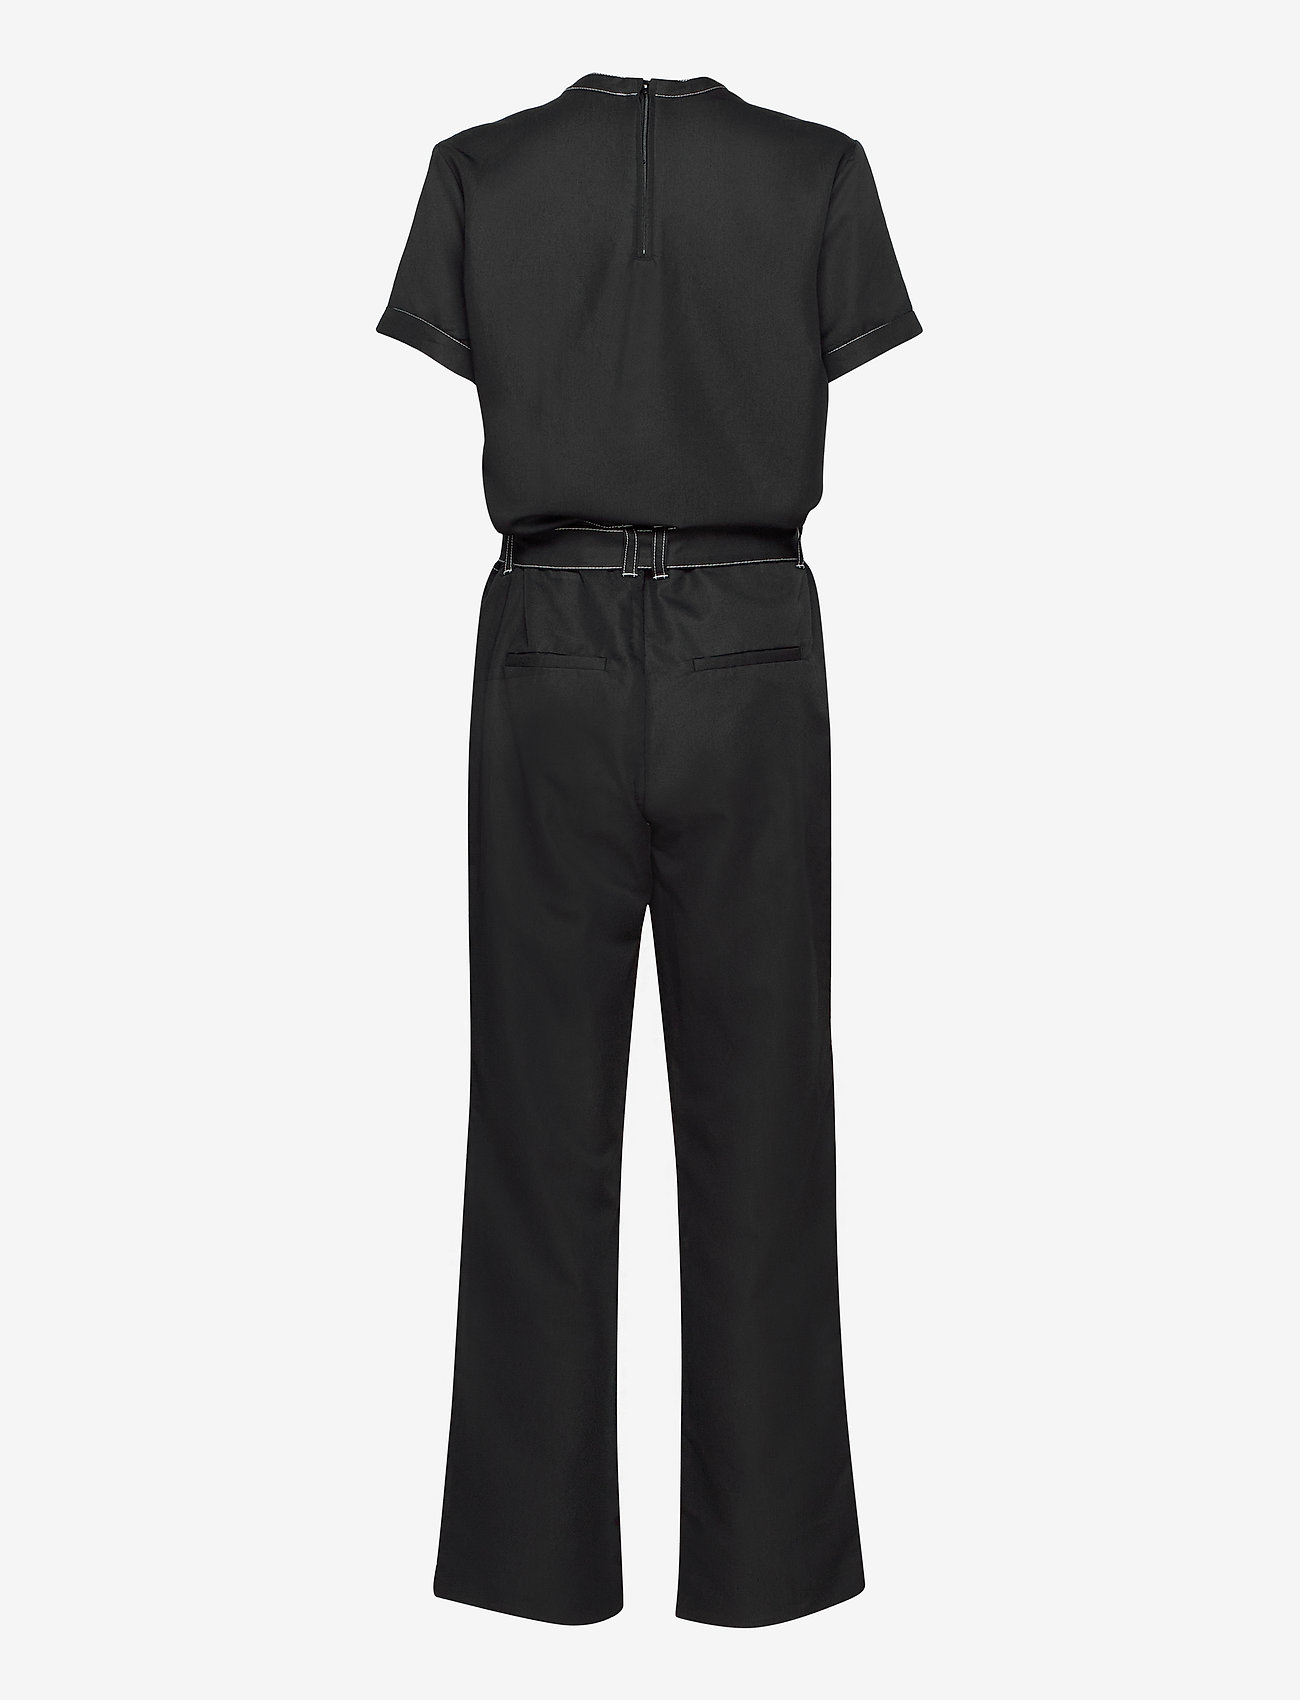 Levete Room - LR-JULIE - jumpsuits - l999 - black - 1